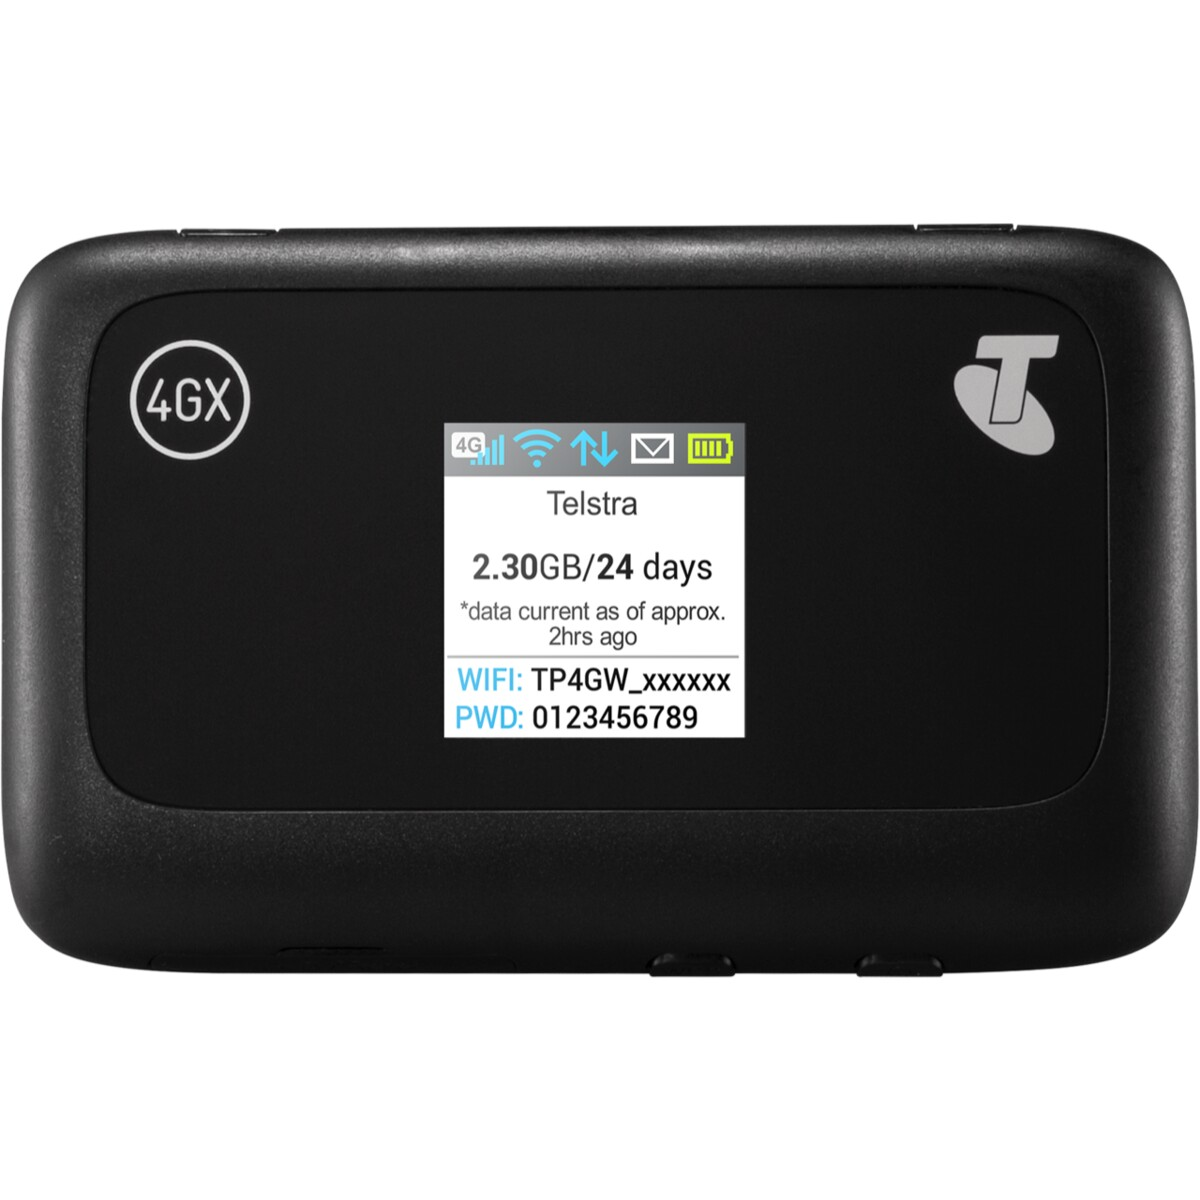 Telstra Pre-Paid 4GX Wi-Fi Plus - DEVICE, SIM + 5GB DATA, Data-free sports streaming, Connect up to 10 Wi-Fi enabled devices